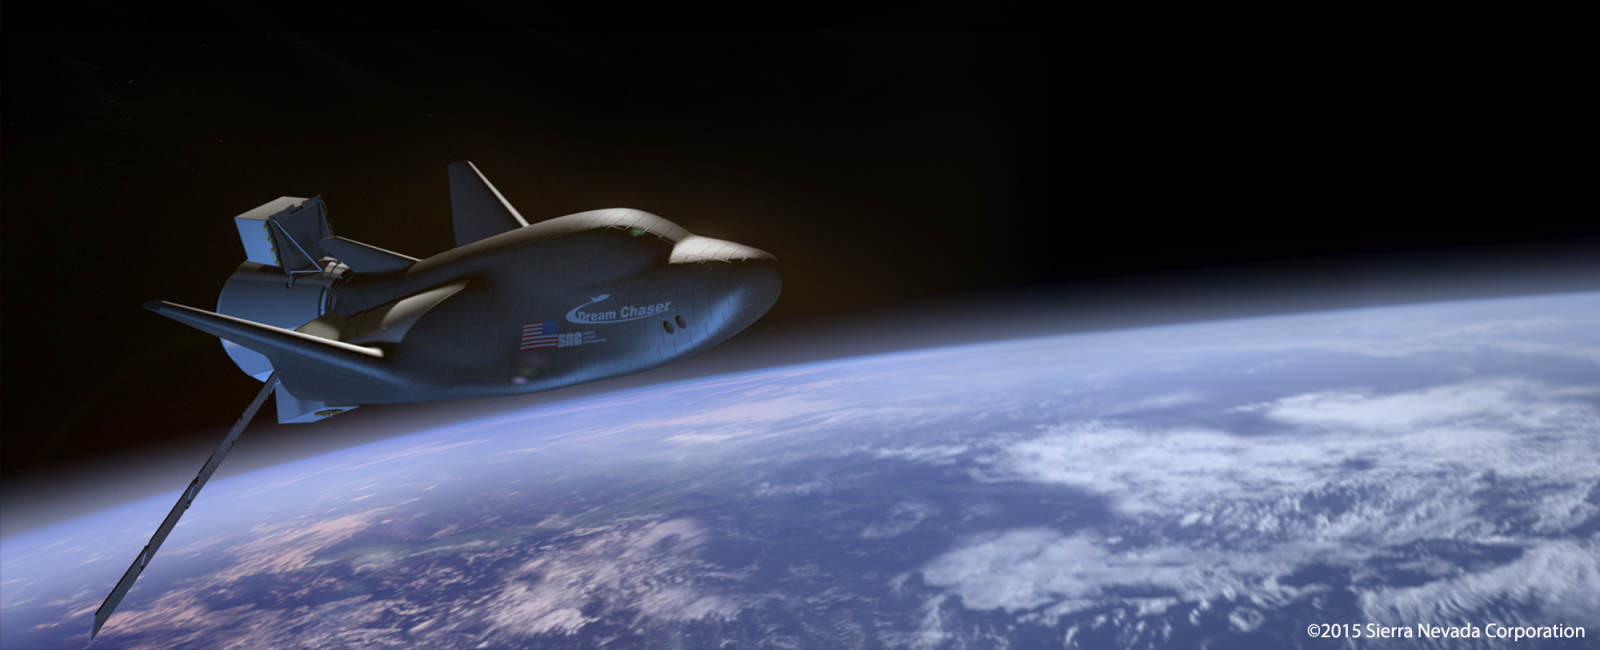 Dream Chaser in orbit. Image Credit SNC